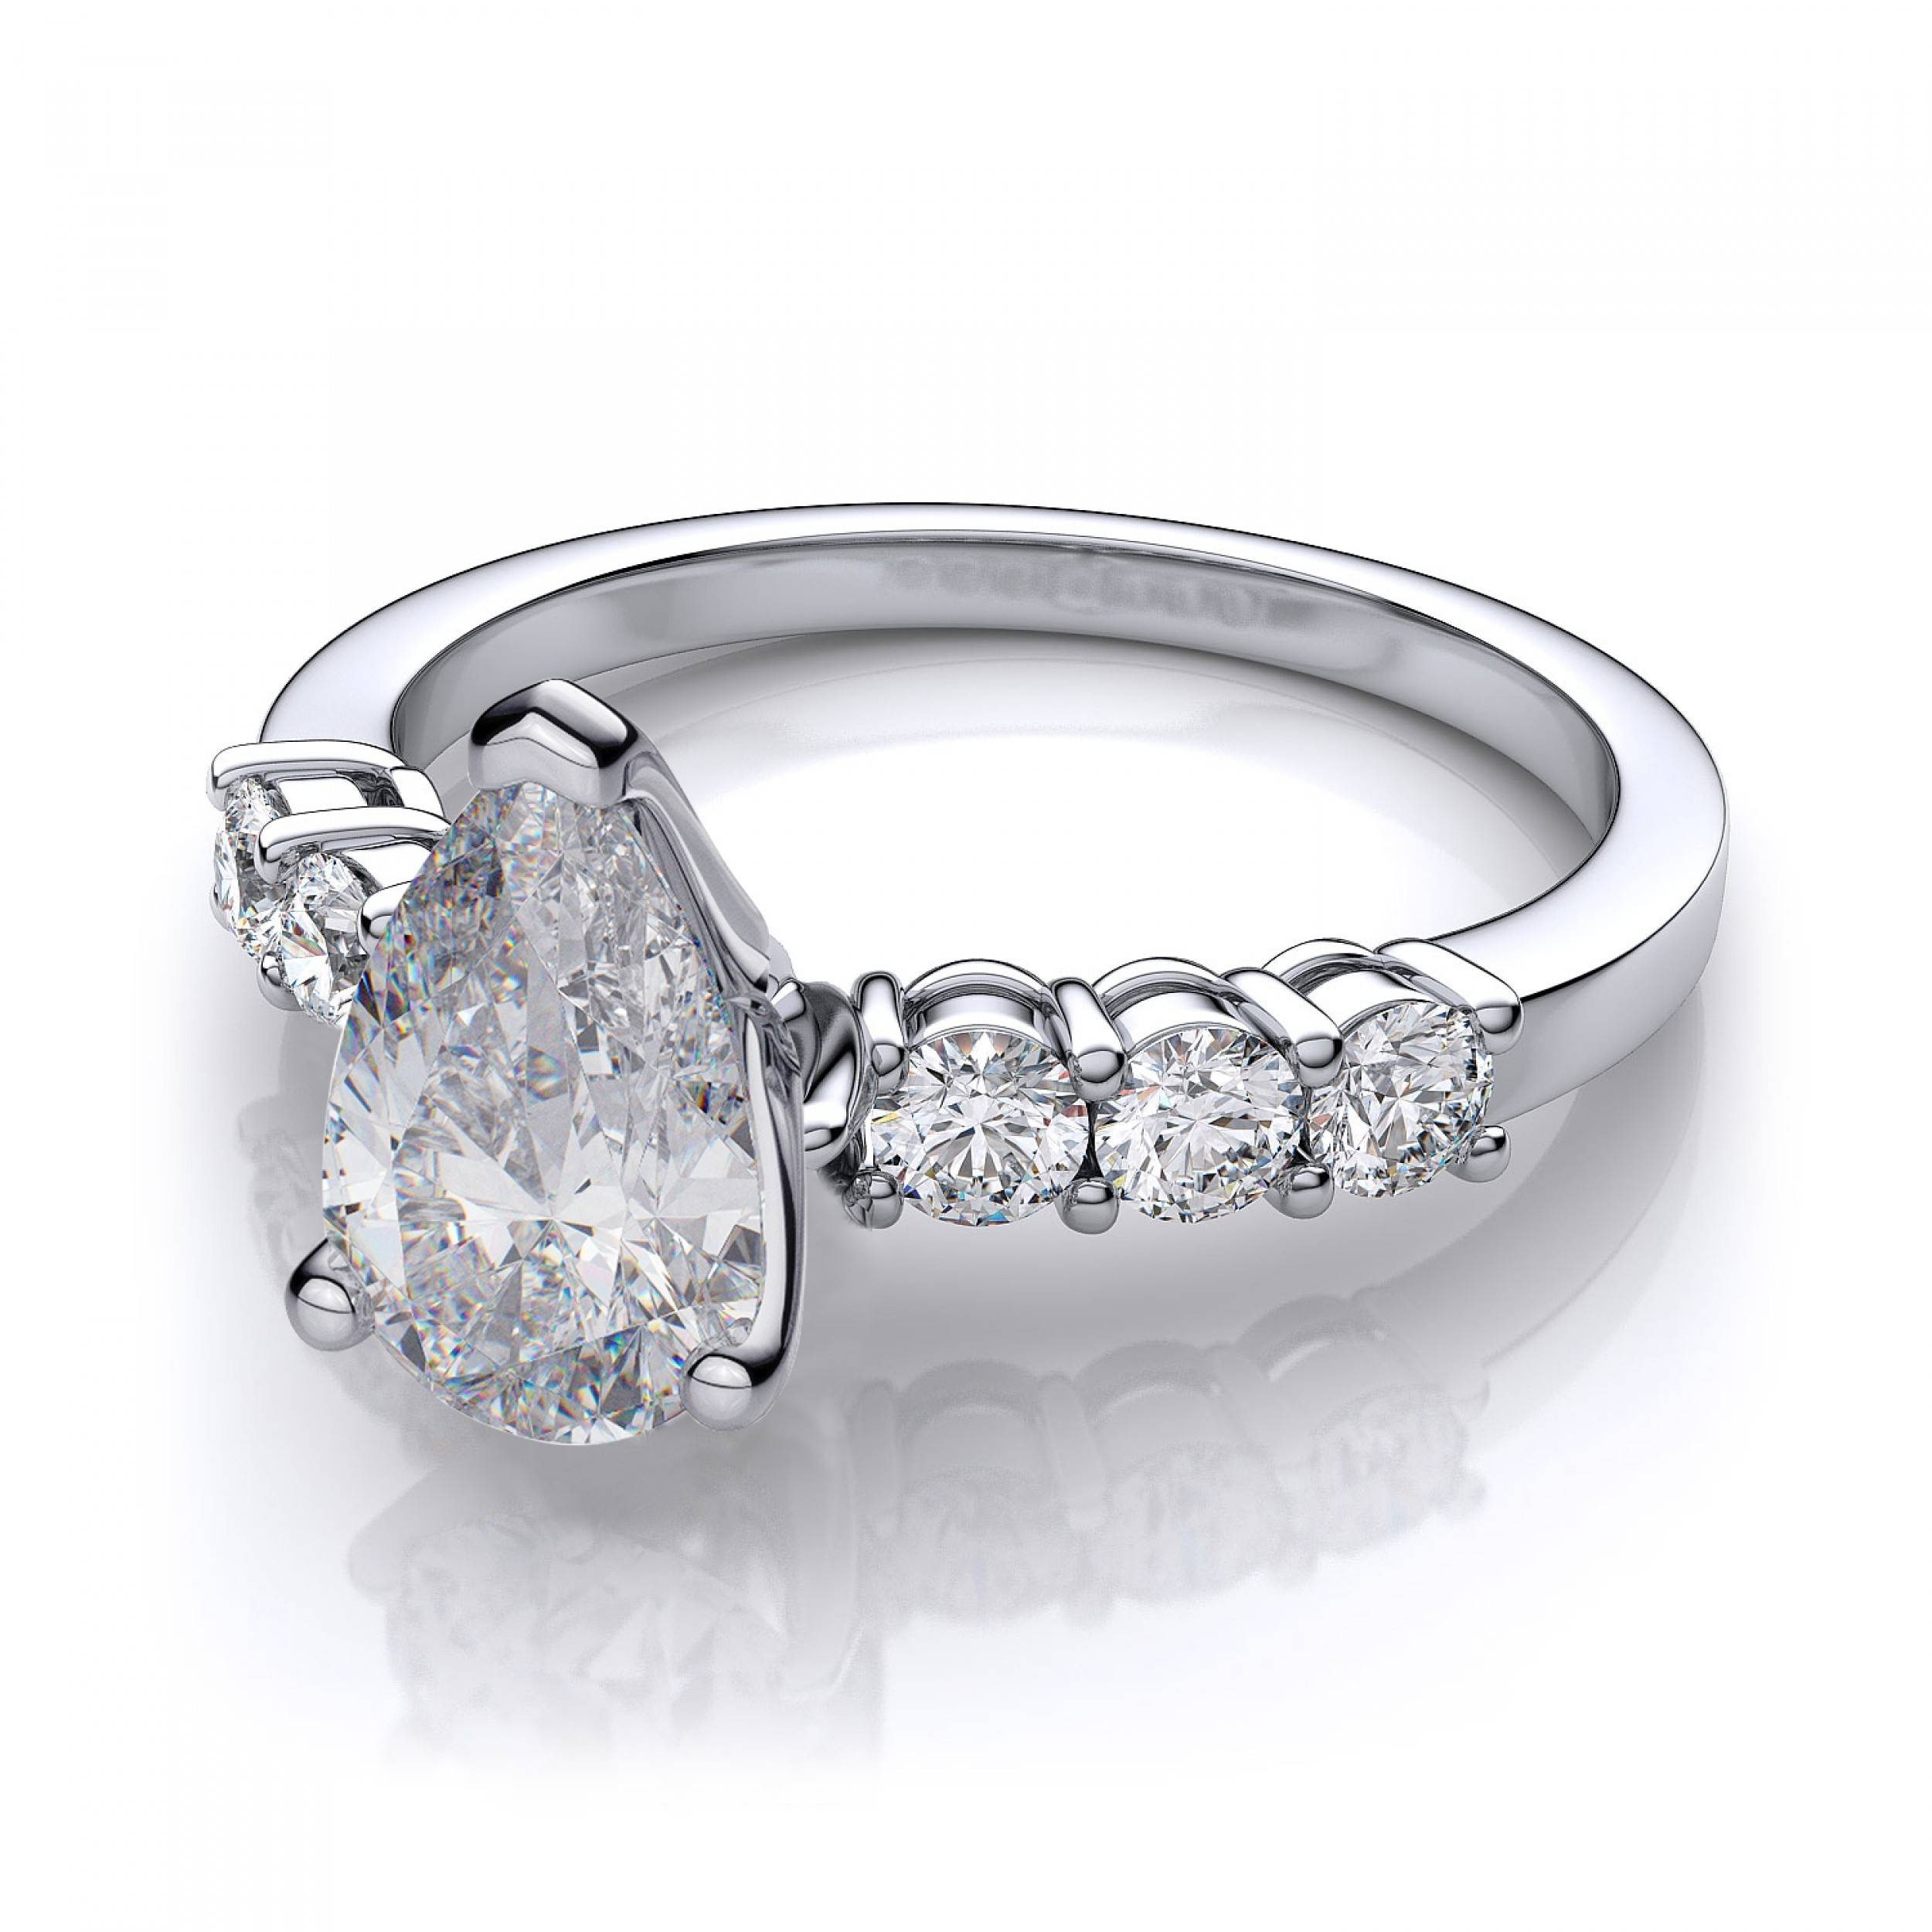 Ctw 6 Stone Pear Shape Sidestones Engagement Ring Setting In 14K Within Pear Shaped Engagement Ring Settings (View 10 of 15)